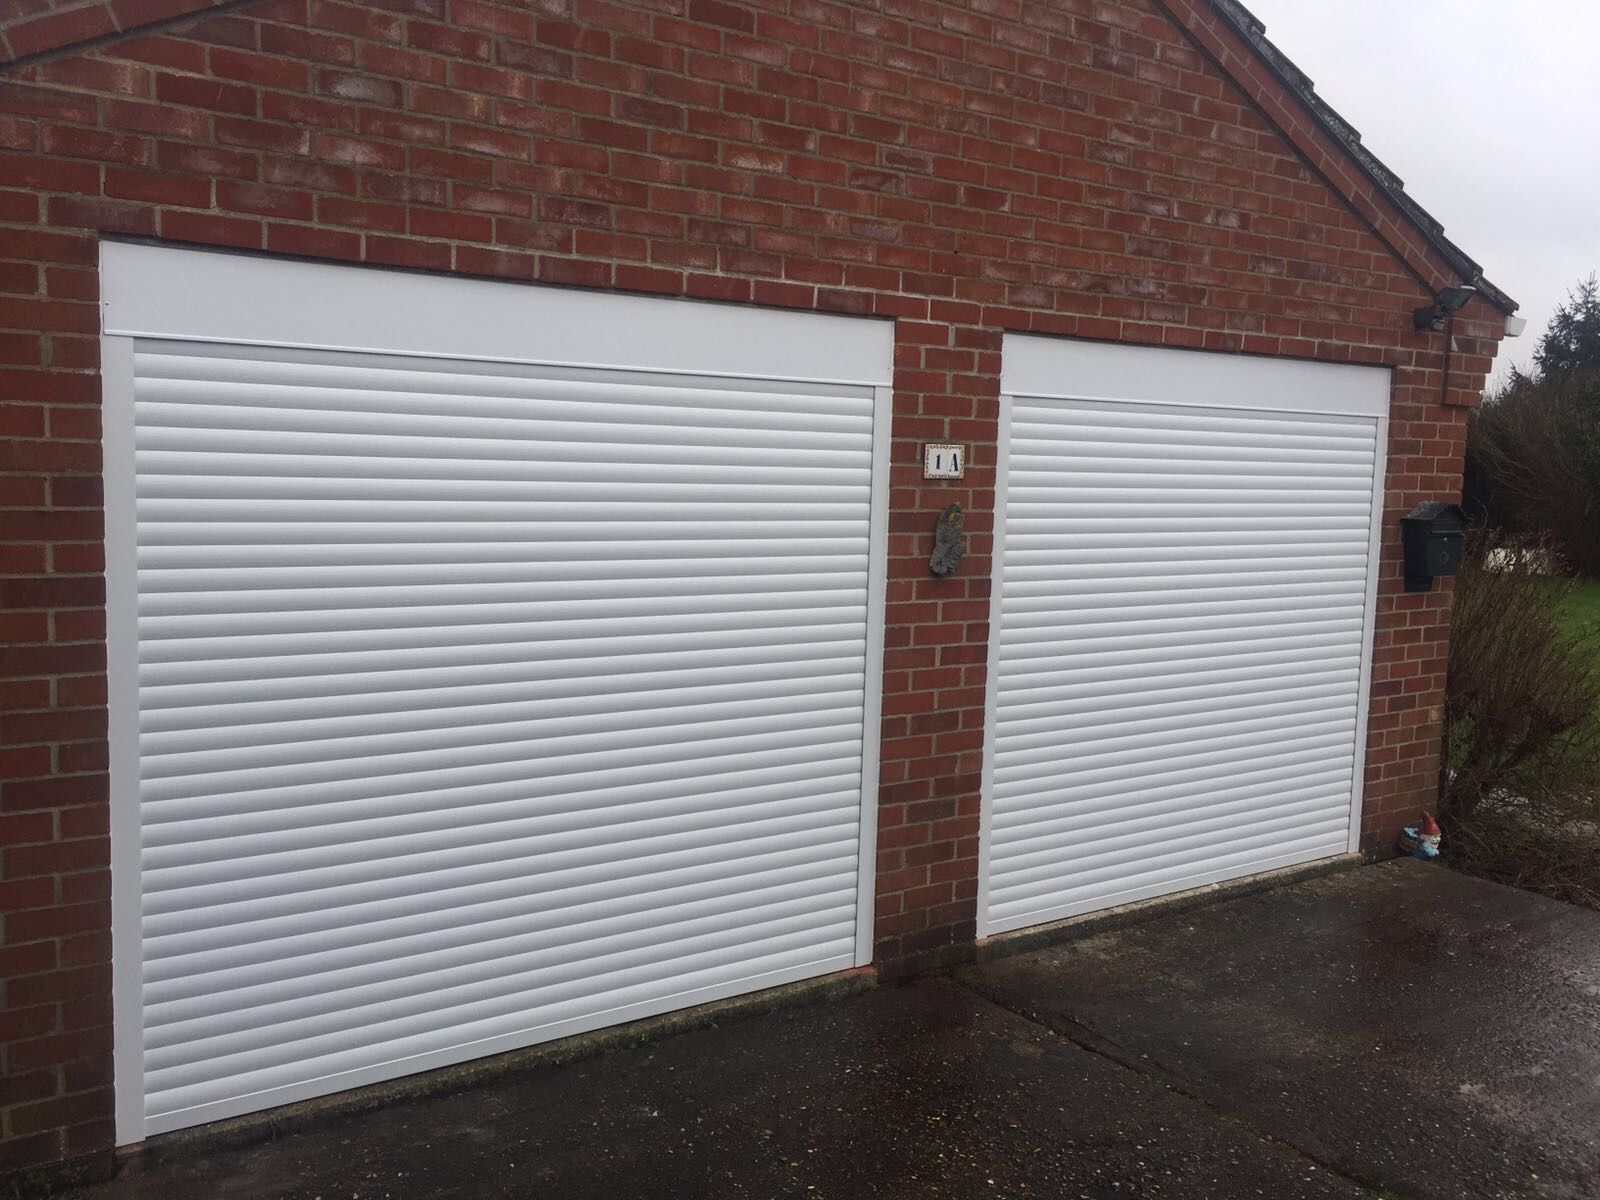 Double Insulated Roller Garage Door With Box And Guides Inside The